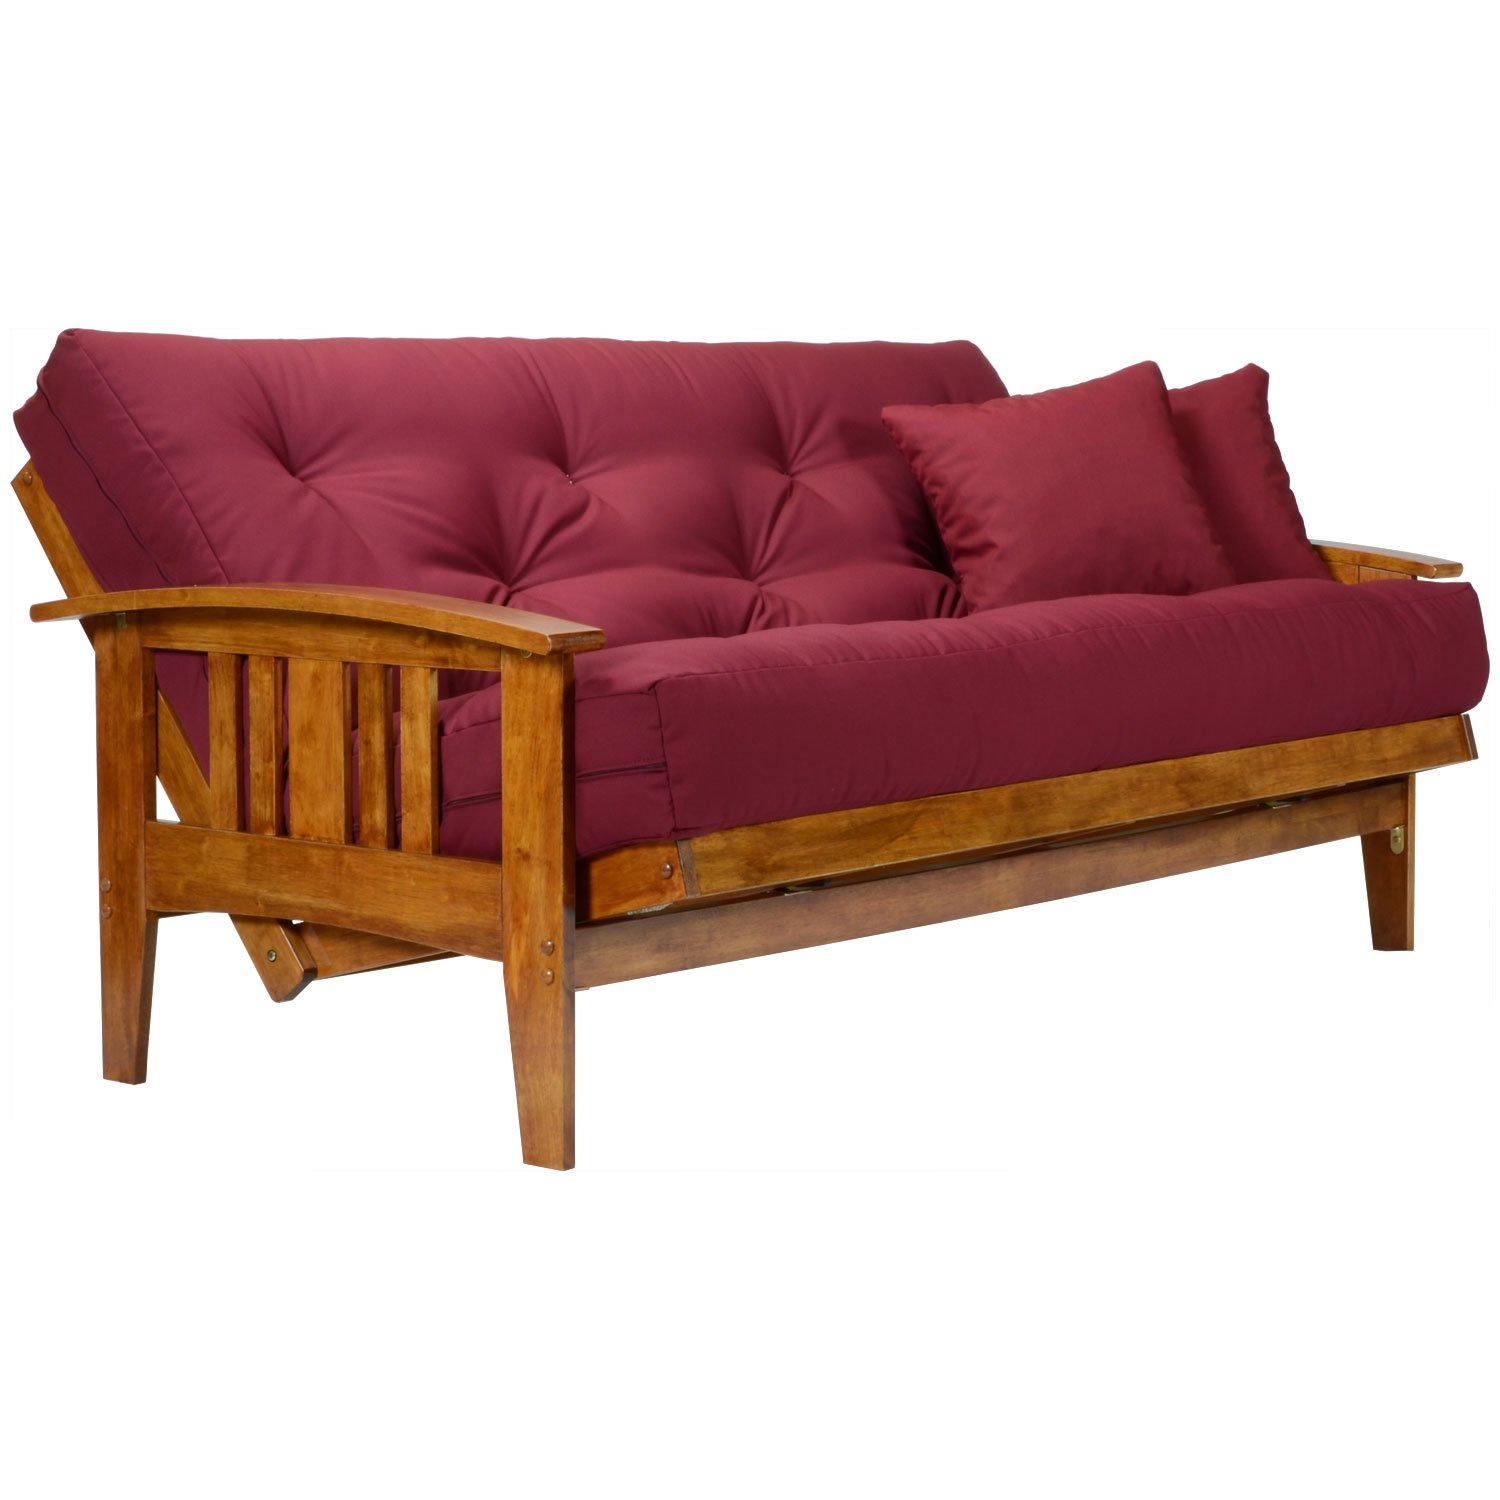 Futon Amazon Home Decor